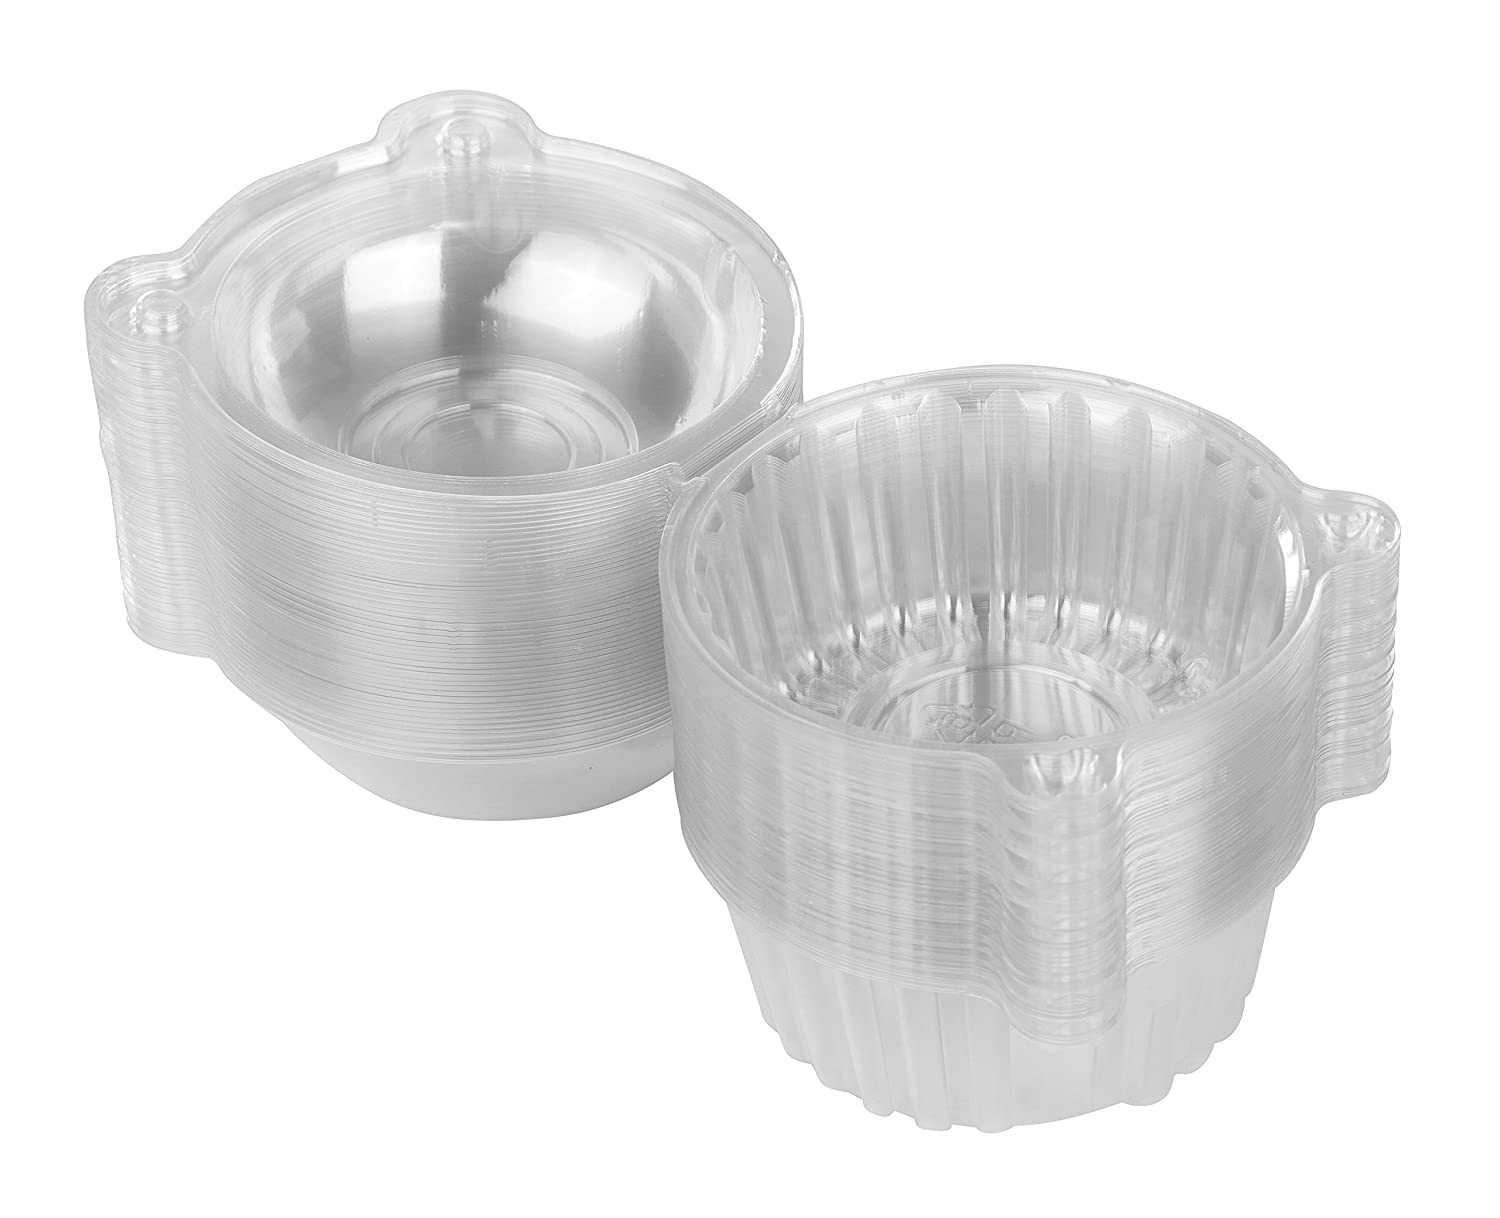 100 Single Individual Cupcake Muffin Holders Clear Plastic Cupcake Dome Holders, Cupcake Pods Carrier Case Boxes With Resealable Lids Premium Disposables PD073-100